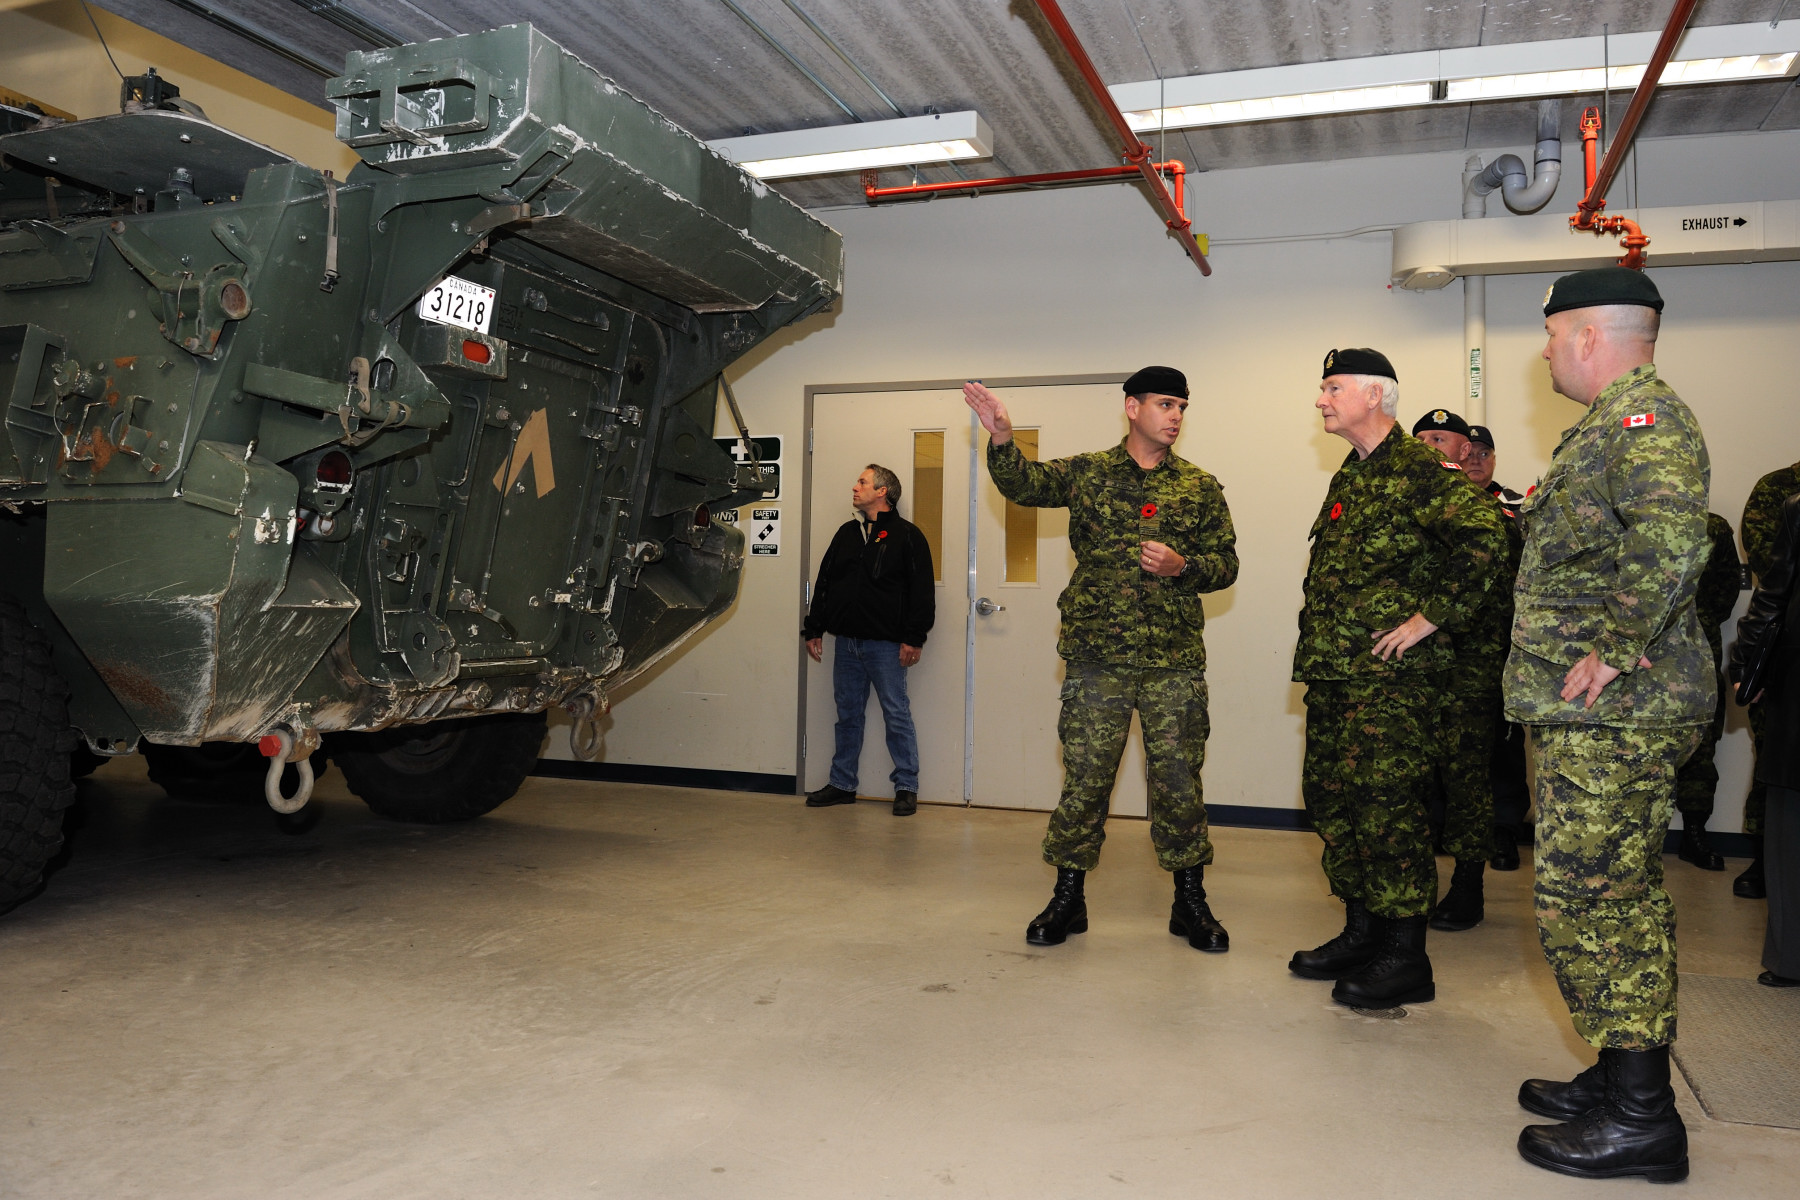 CFB Gagetown was officially opened in 1958 as a training facility. With 1 100 square kilometres of training area, CFB Gagetown is the second largest military base in Canada and the largest training facility in Eastern Canada.